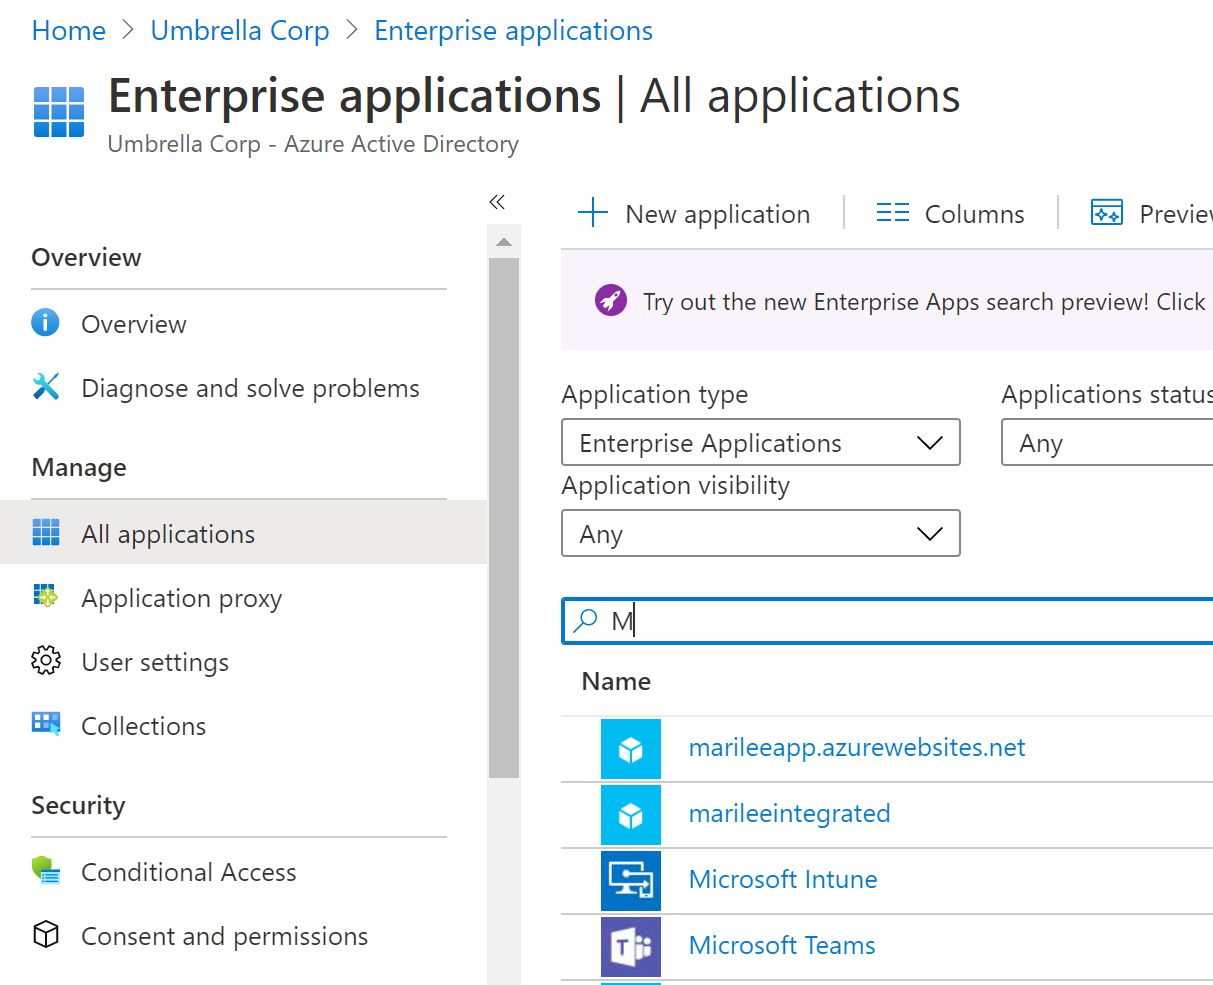 """Example showing my """"marilee app"""" custom app, and Microsoft Enterprise Apps in the Enterprise Applications blade"""